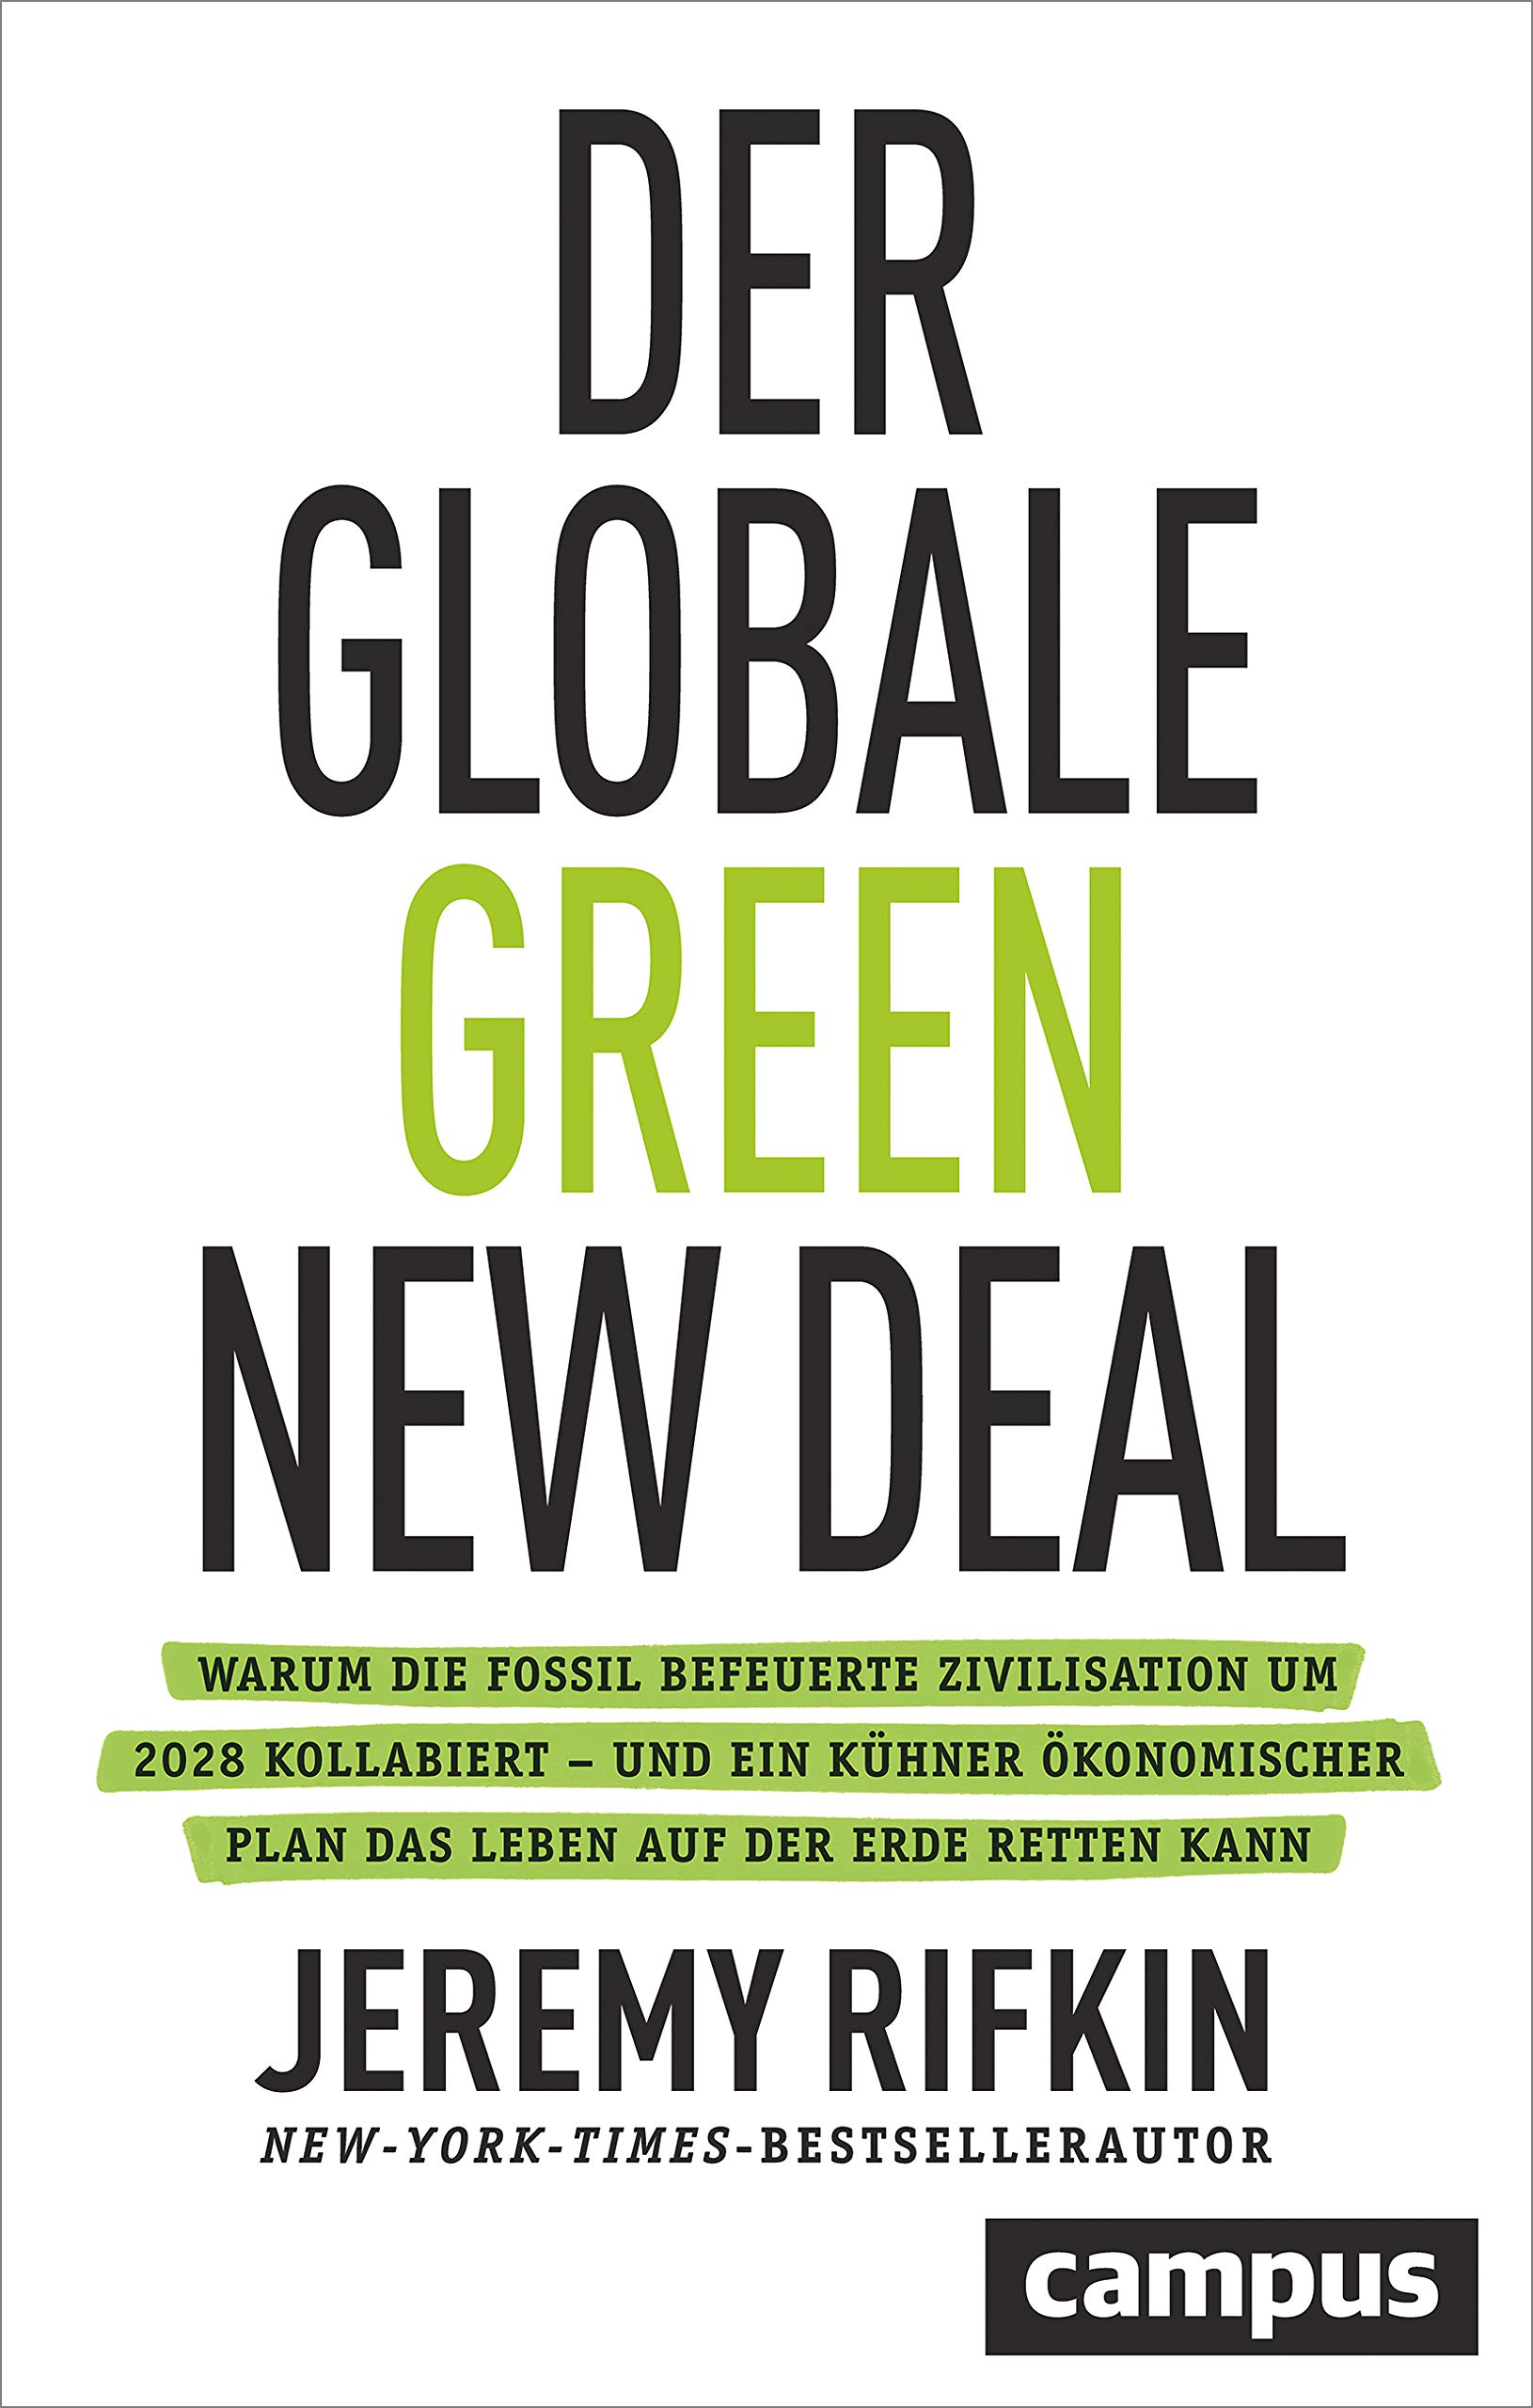 Buchtipp: Der globale Green New Deal